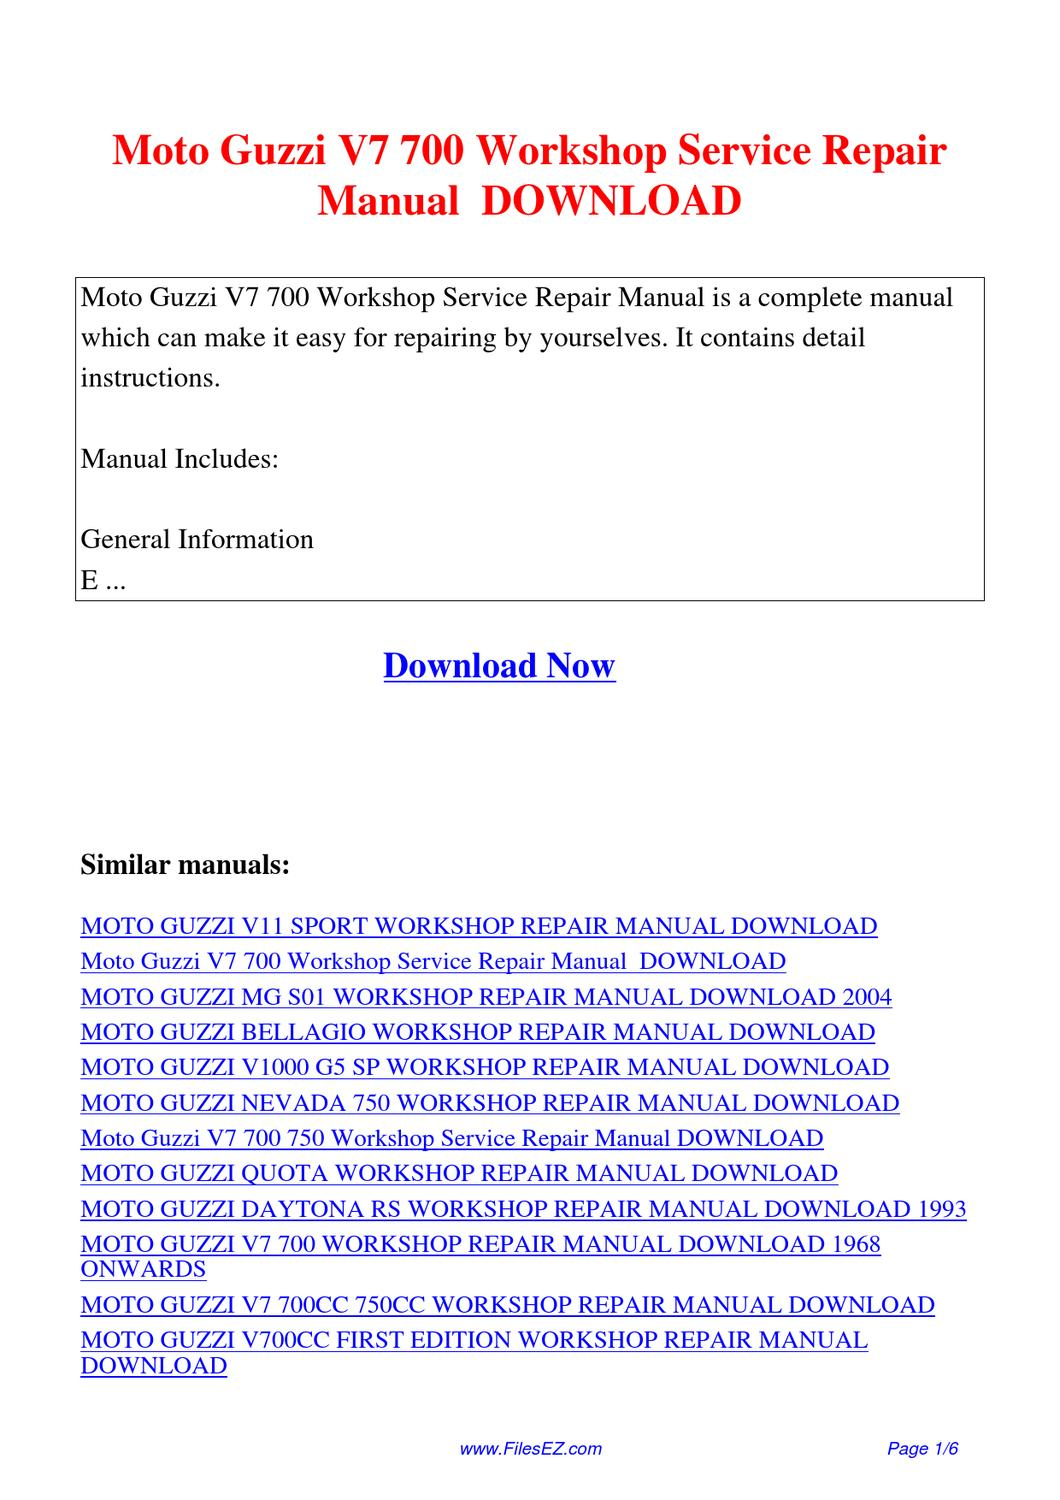 Moto Guzzi V7 700 Workshop Service Repair Manual By Yang